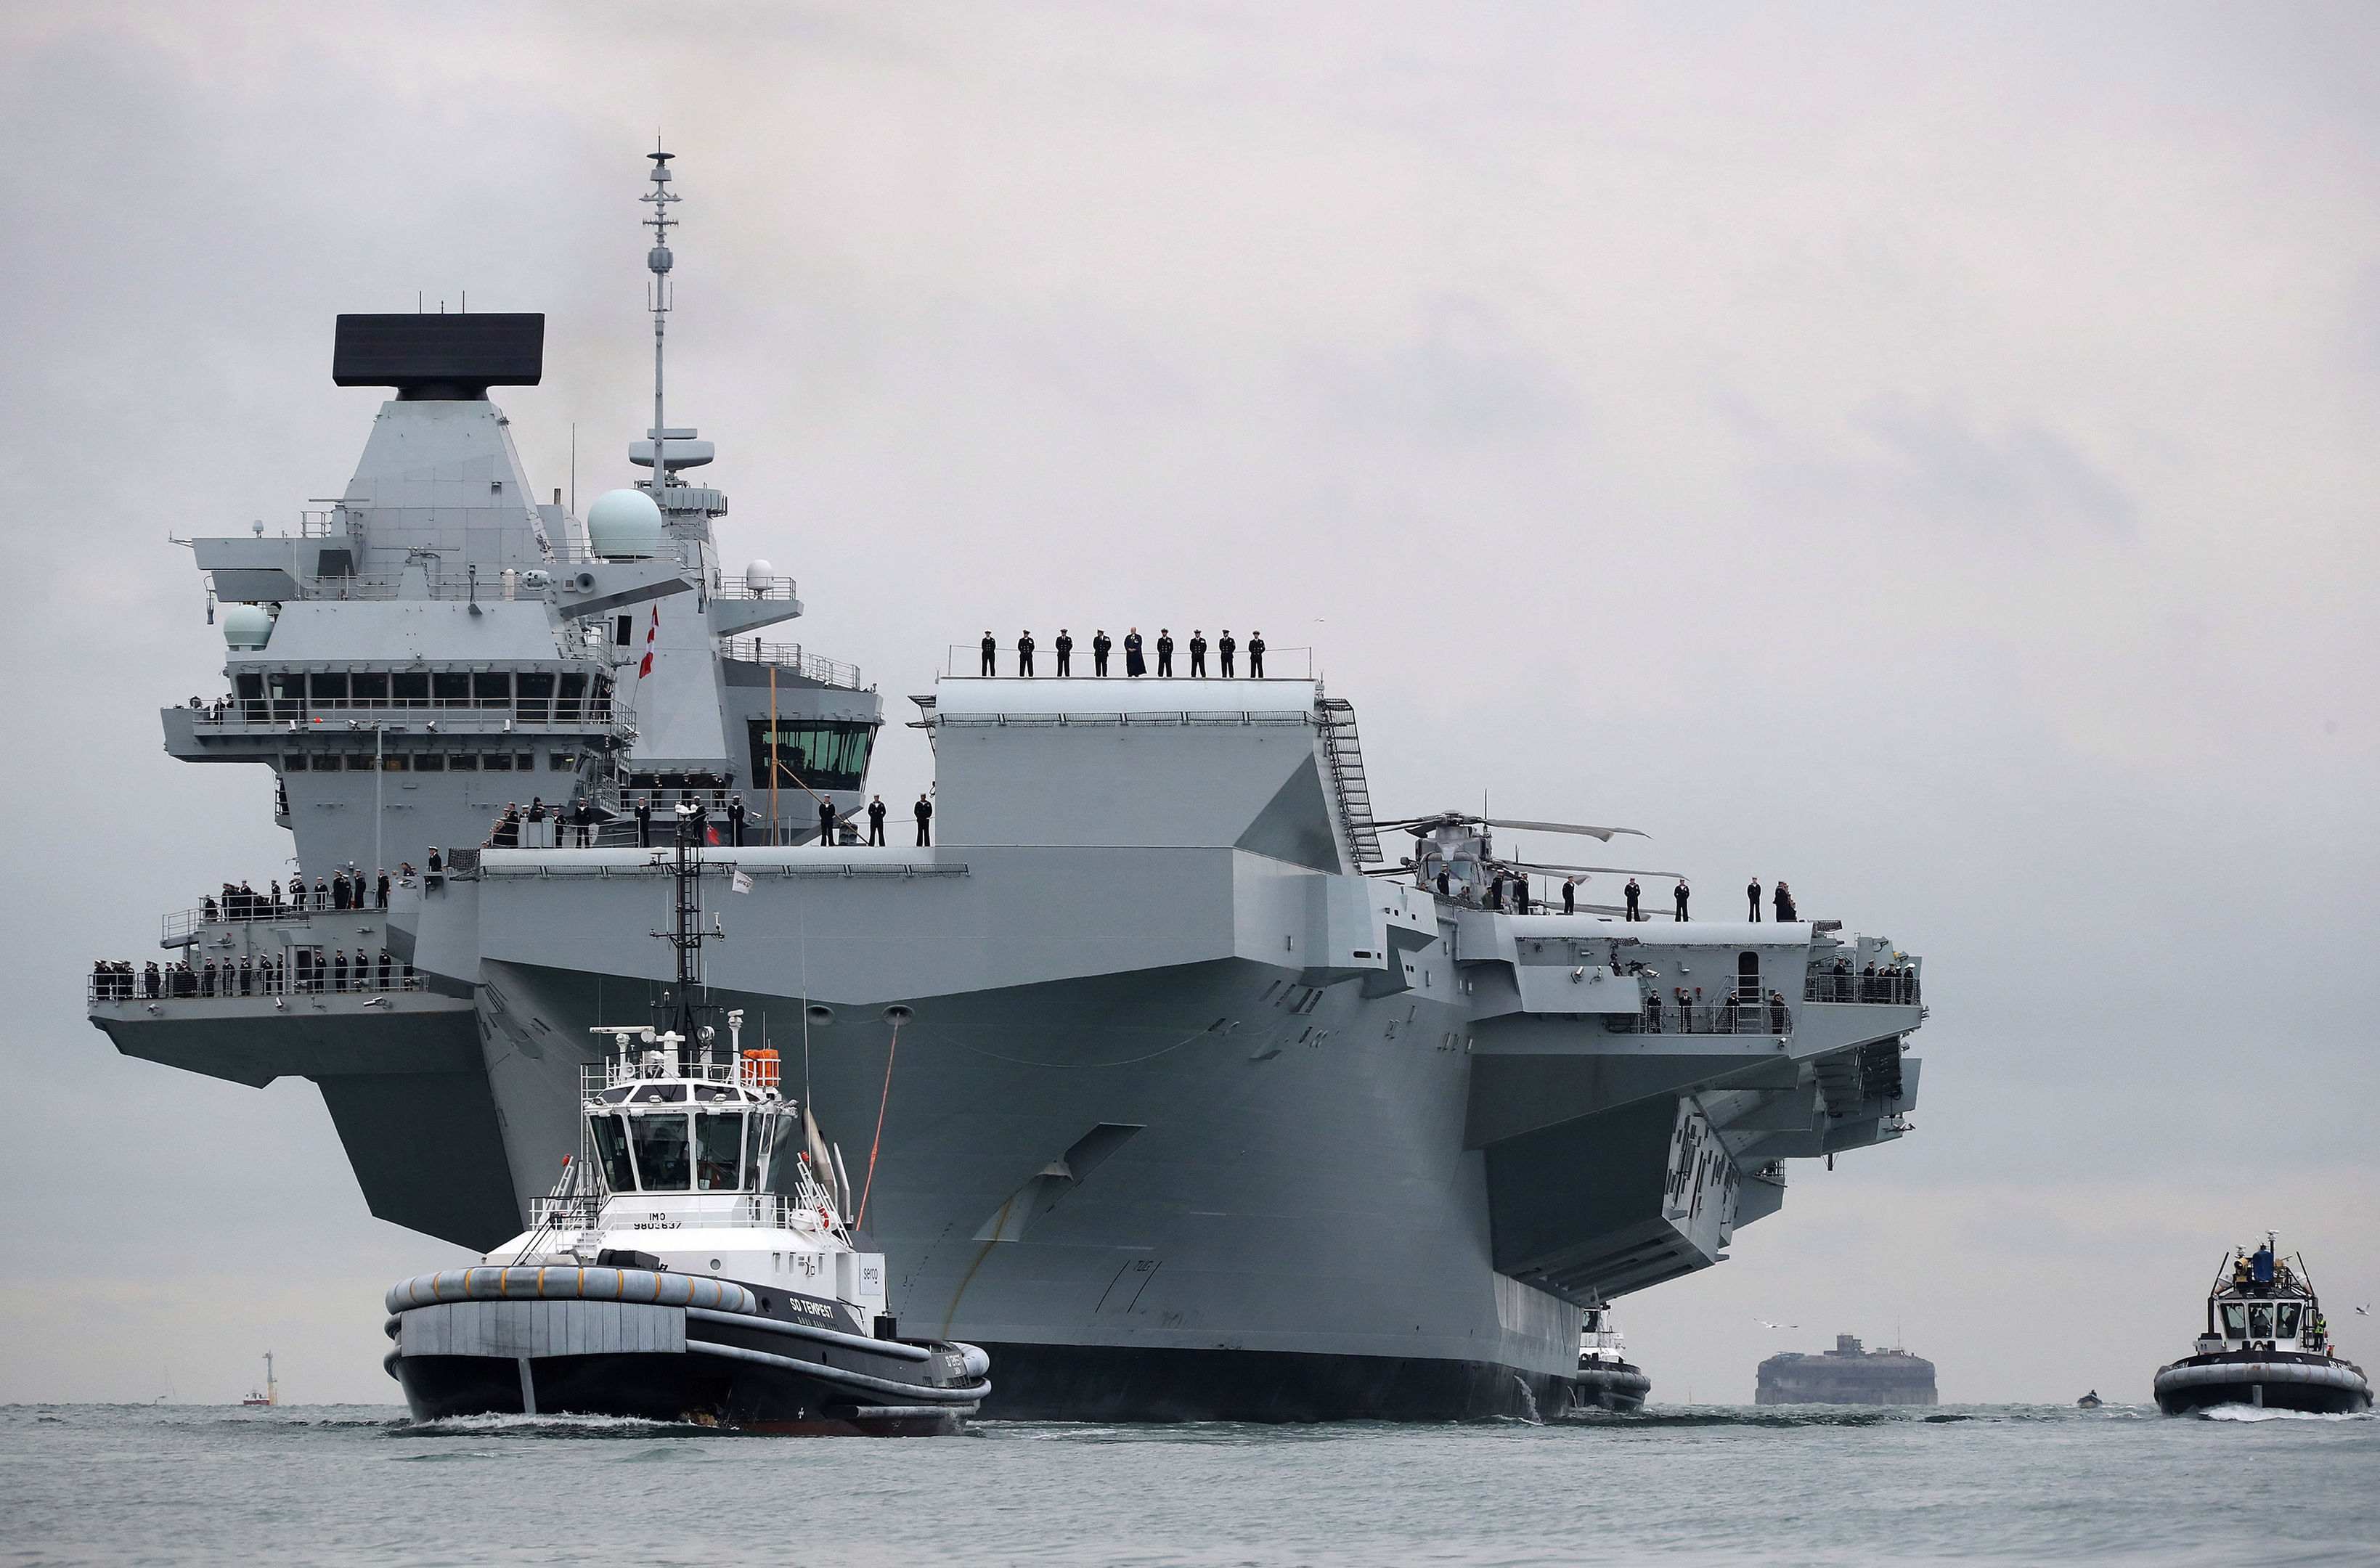 HMS Queen Elizabeth (Ian Simpson/Royal Navy/PA Wire)